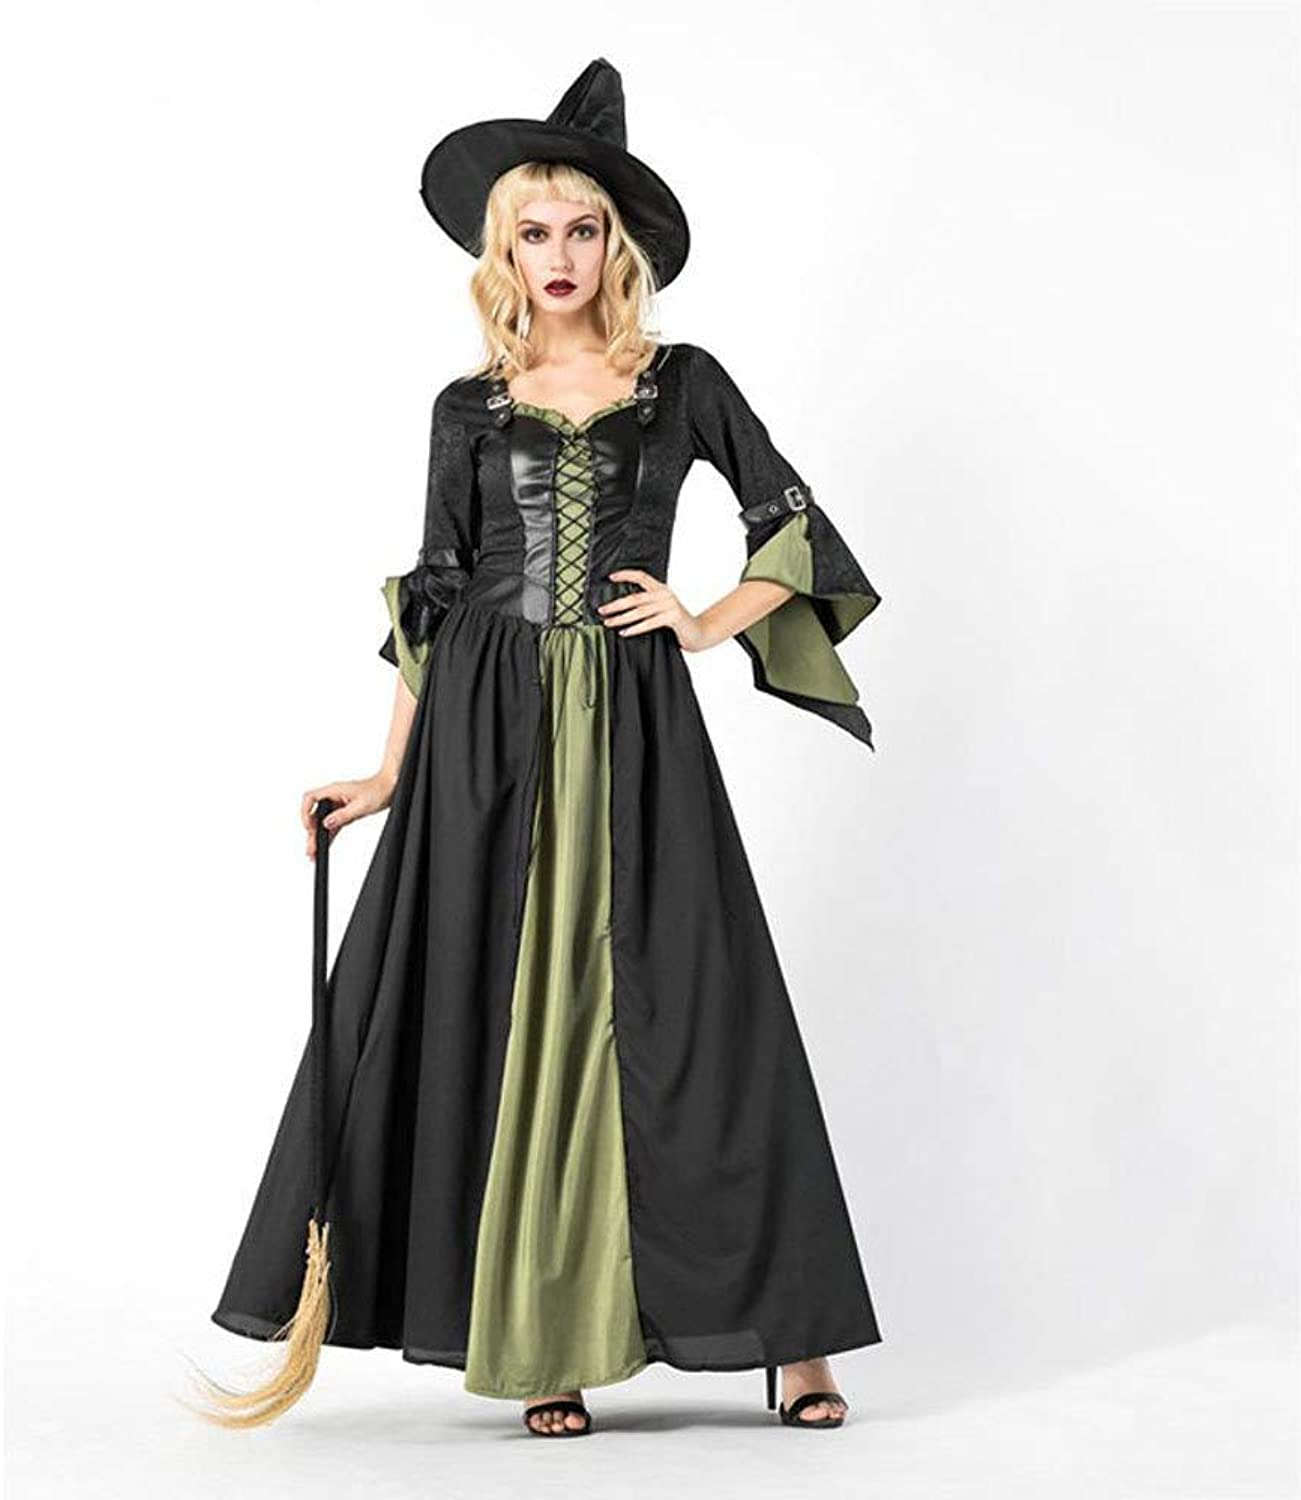 Shisky Cosplay Women's Clothing, Halloween Costume Cosplay Adult Costume Party Witch Costume